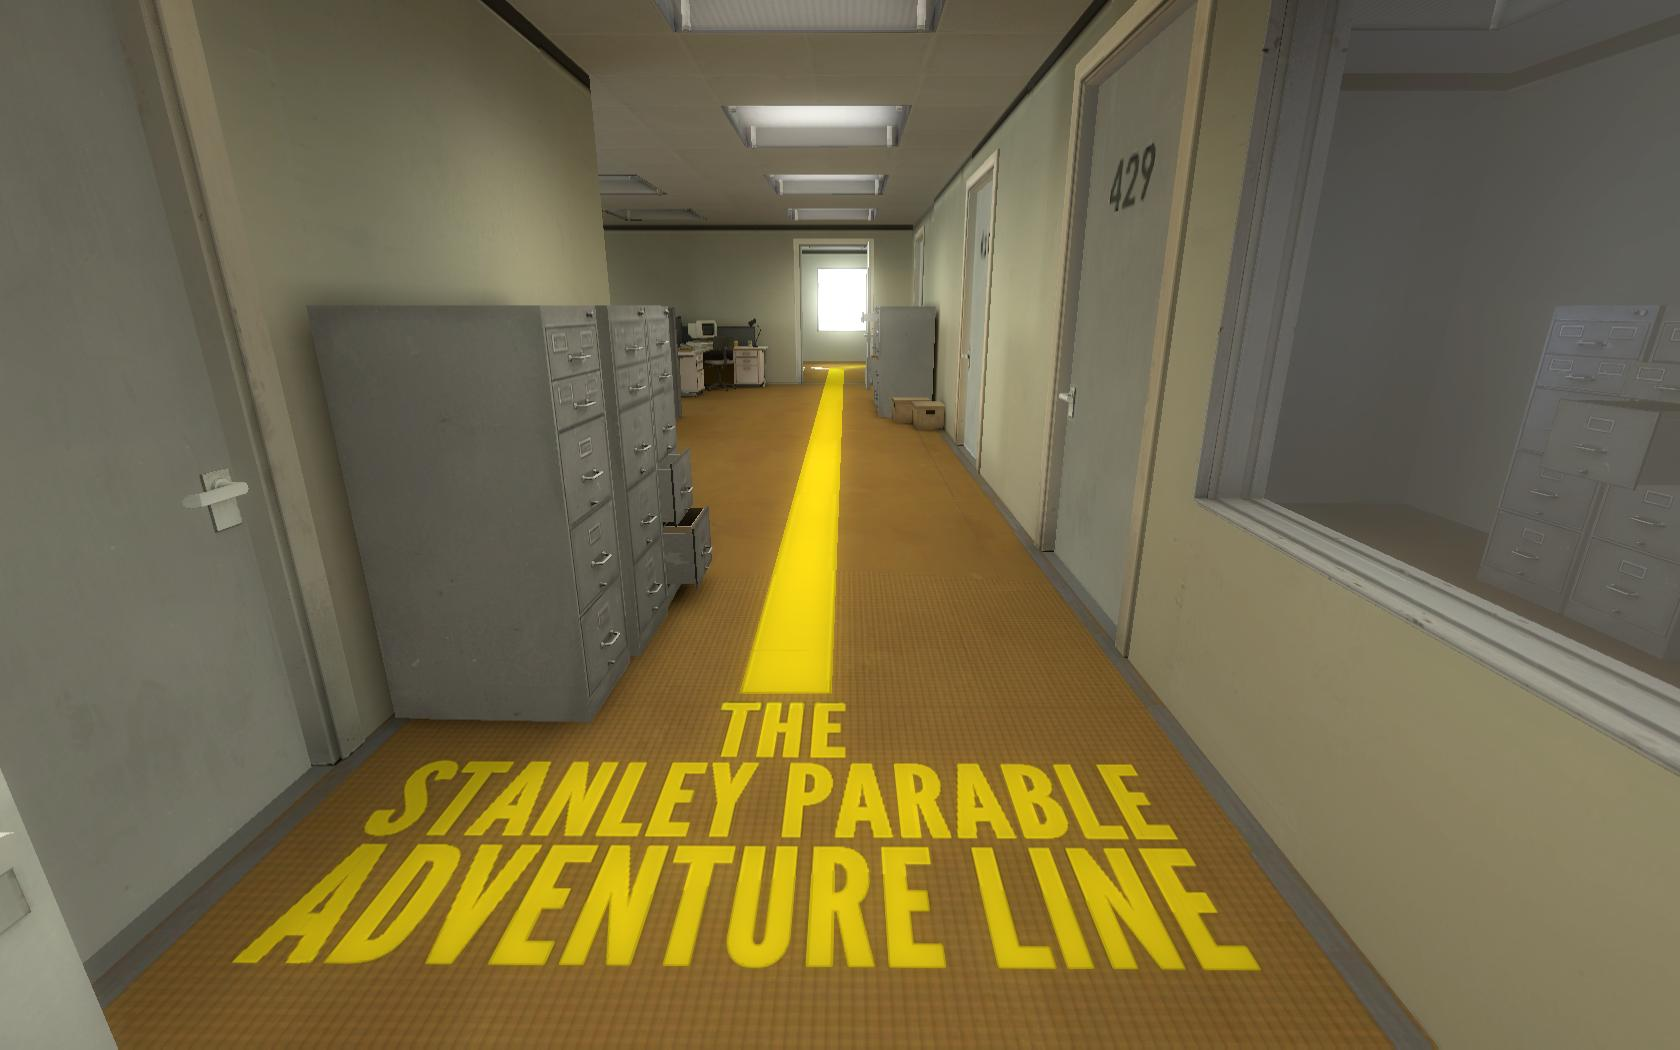 01_StanleyParable